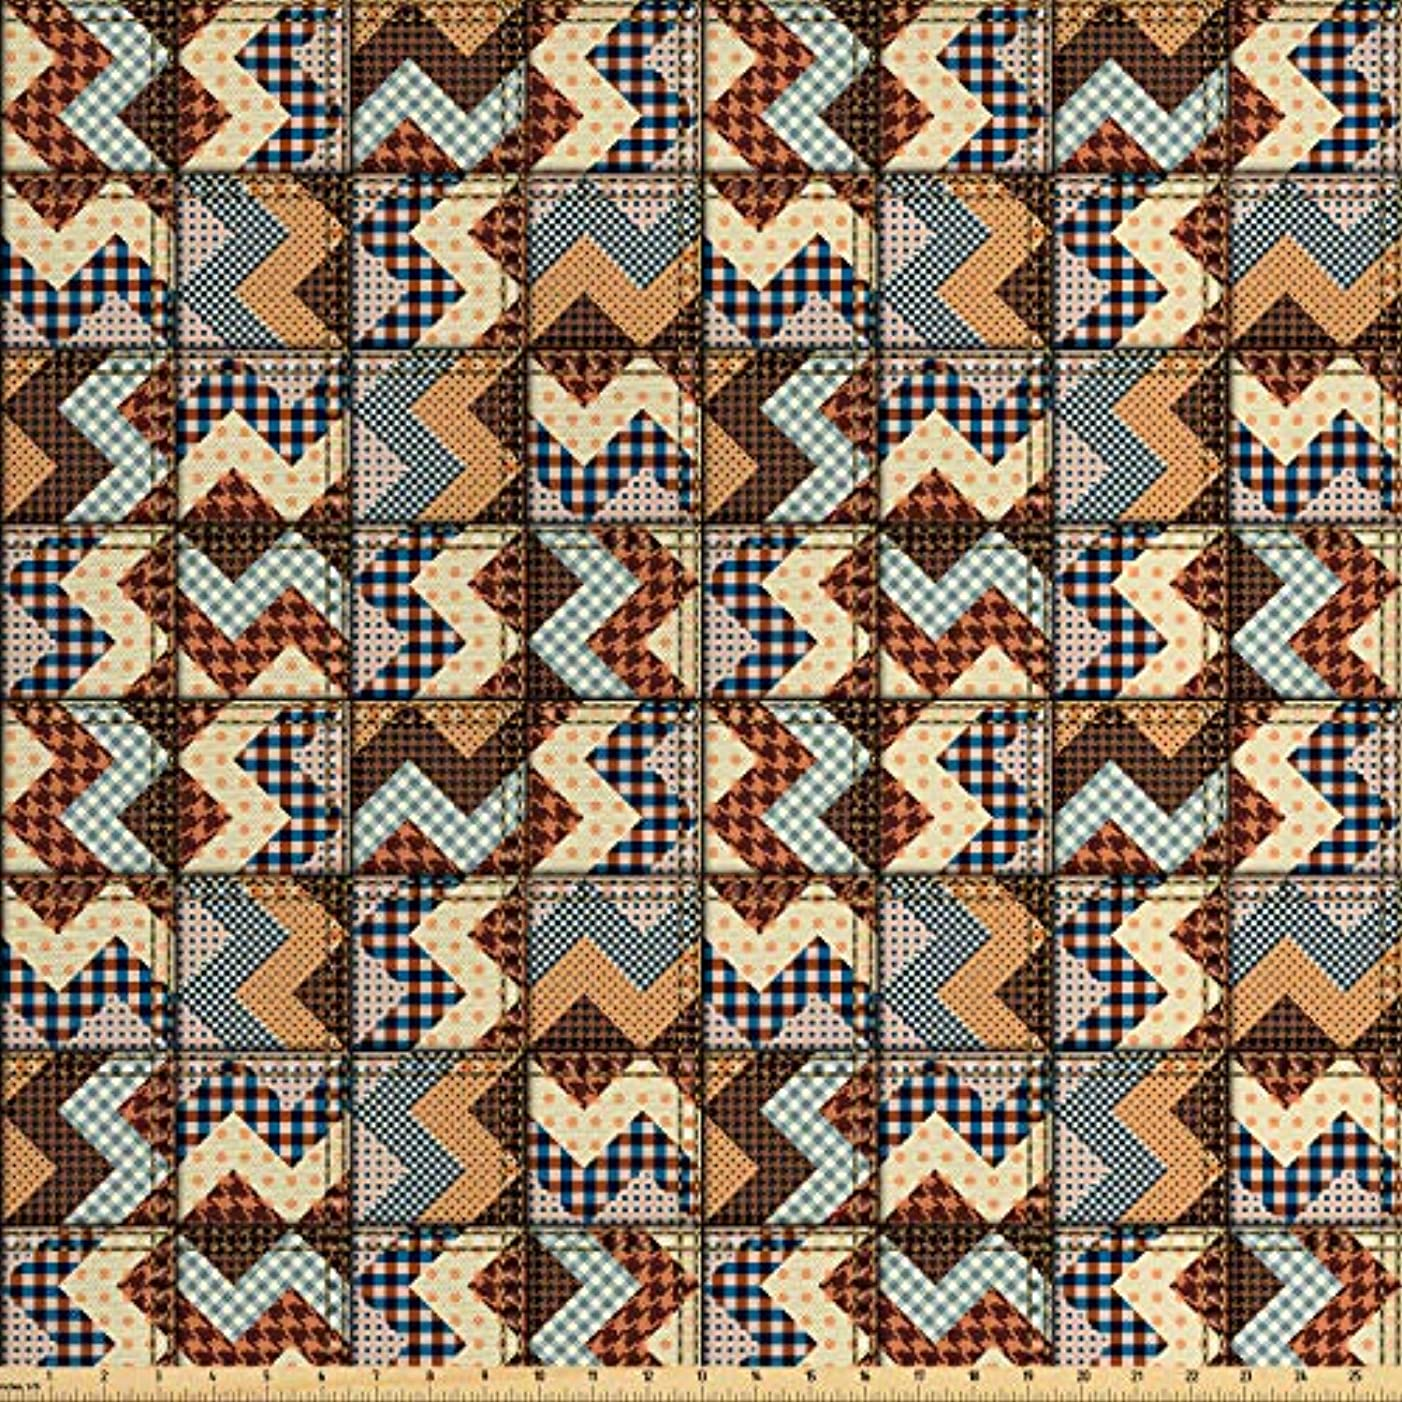 Lunarable Chevron Fabric by The Yard, Old Fashioned Chevron Insignia Motif with Zigzag Lines Curves in Earthy Colors, Decorative Fabric for Upholstery and Home Accents, 3 Yards, Brown Cream